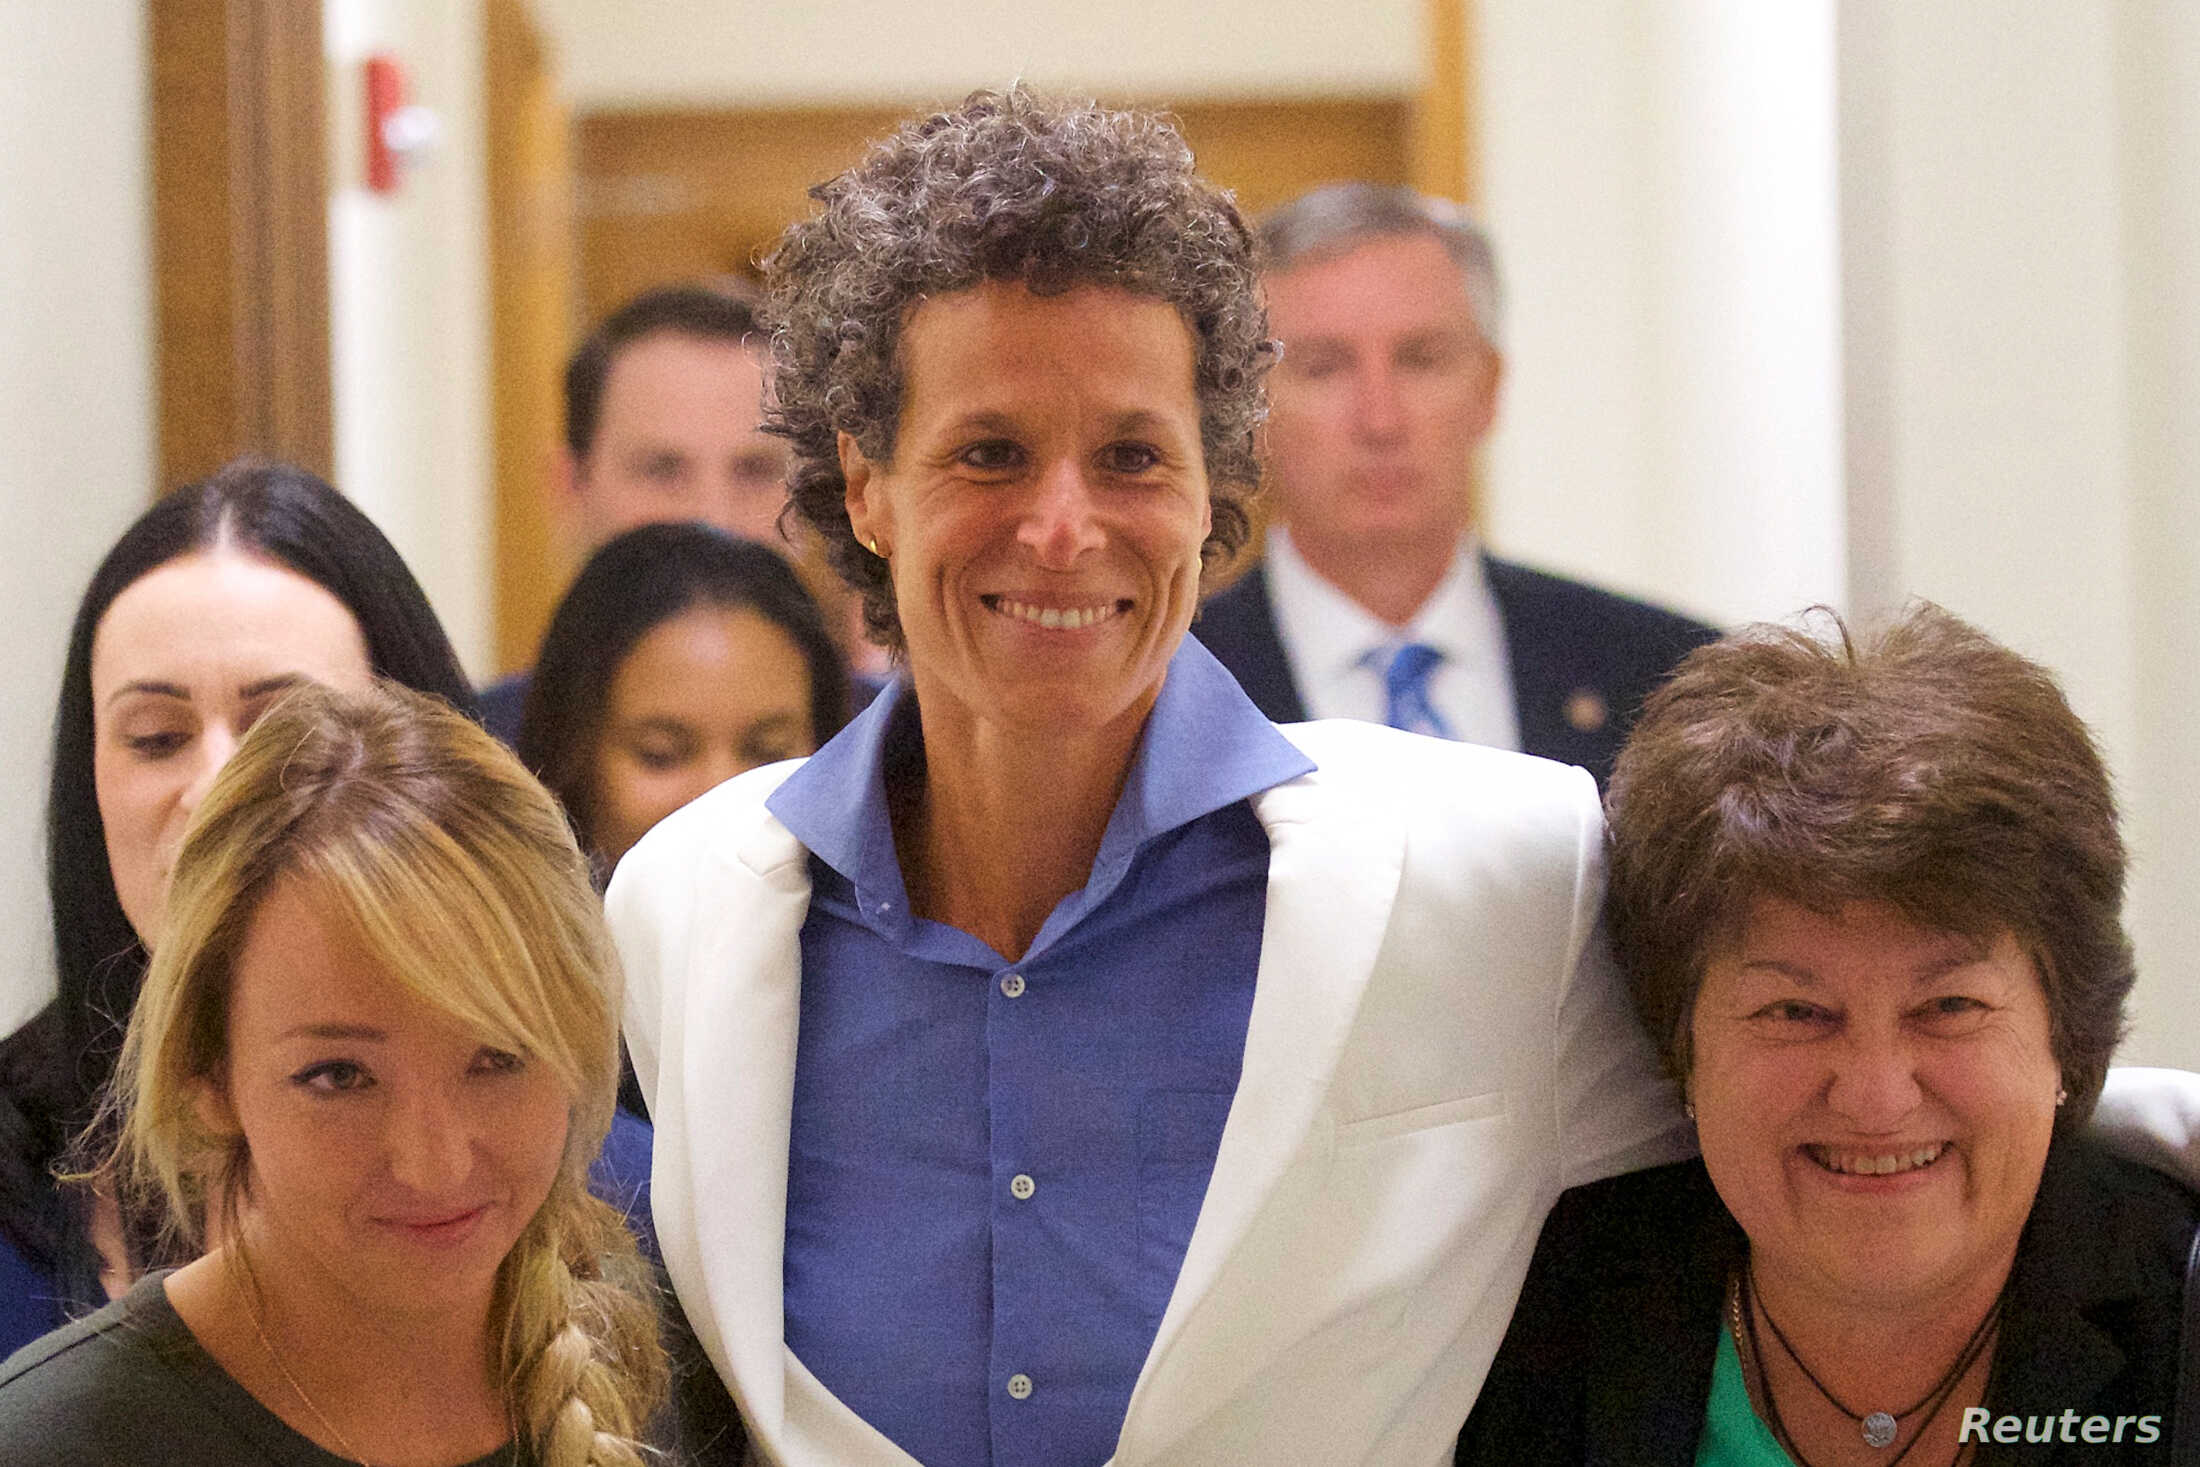 Bill Cosby accuser Andrea Constand, center, reacts after the guilty on all counts verdict was delivered in the sexual assault retrial at the Montgomery County Courthouse in Norristown, Pennsylvania, April 26, 2018.